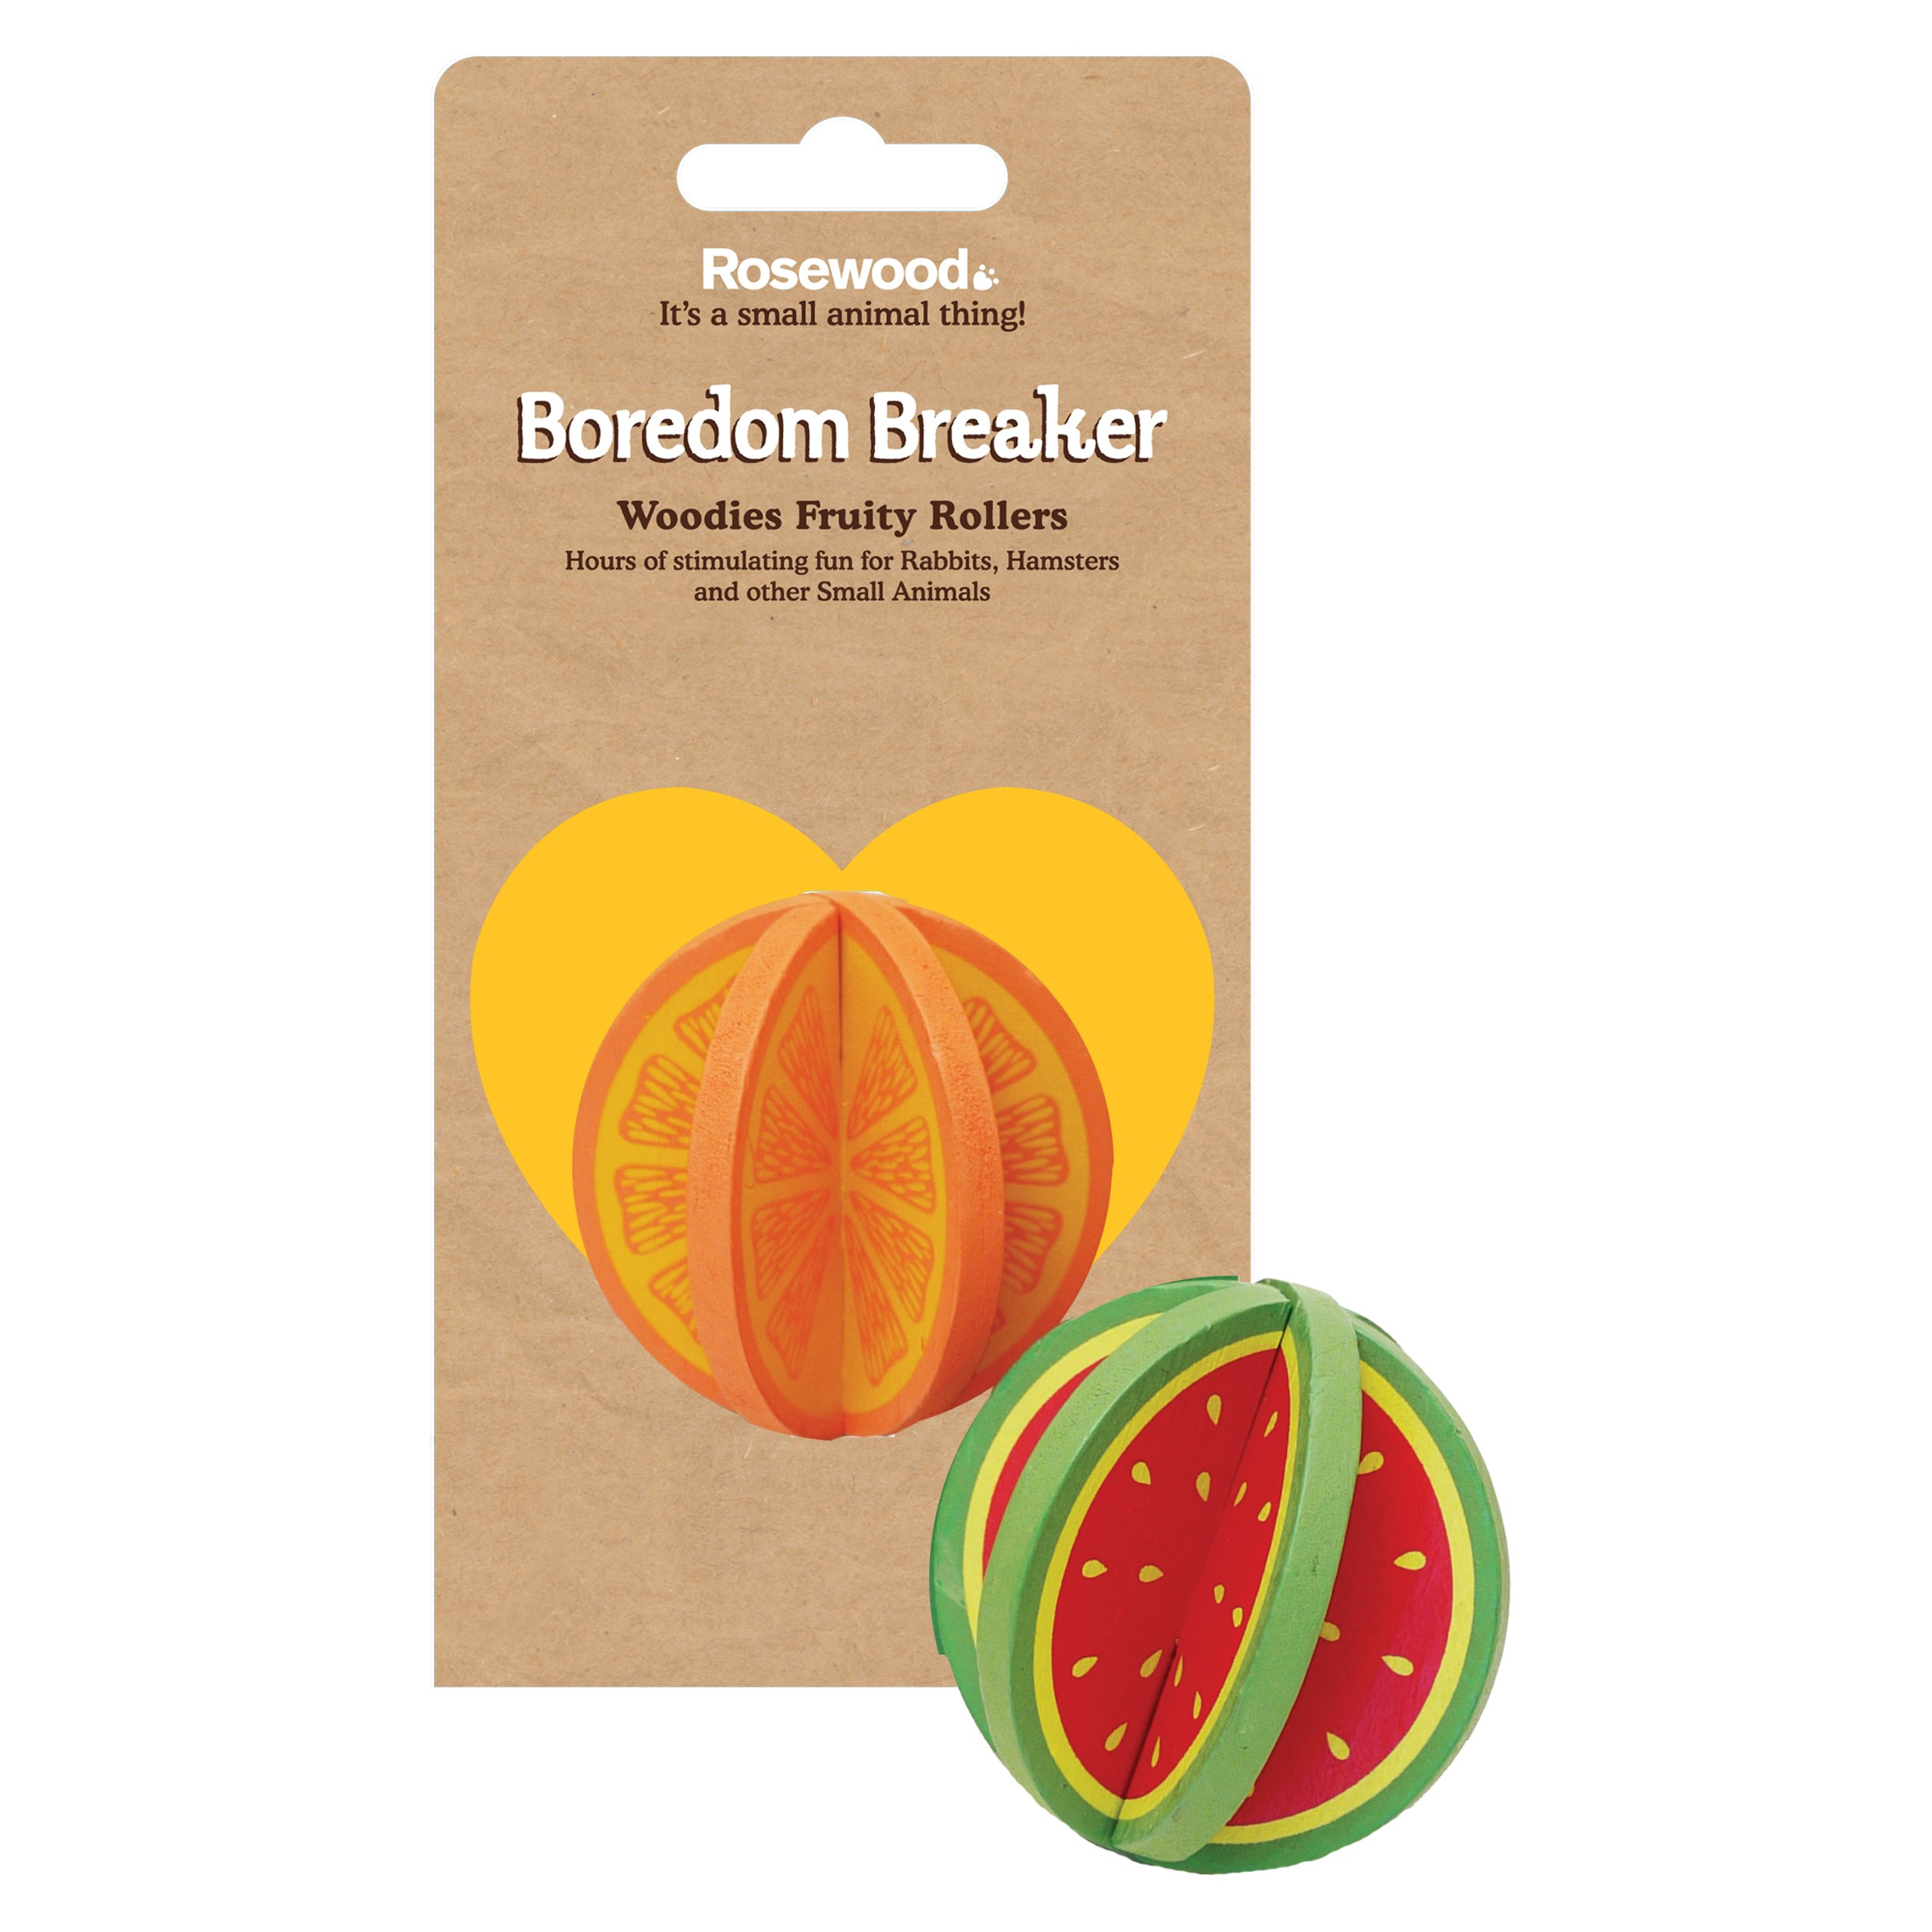 Rosewood Pet Boredom Breaker Woodies Fruity Rollers Small Animal Toy  sc 1 st  Walmart & Rosewood Pet Boredom Breaker Woodies Fruity Rollers Small Animal Toy ...